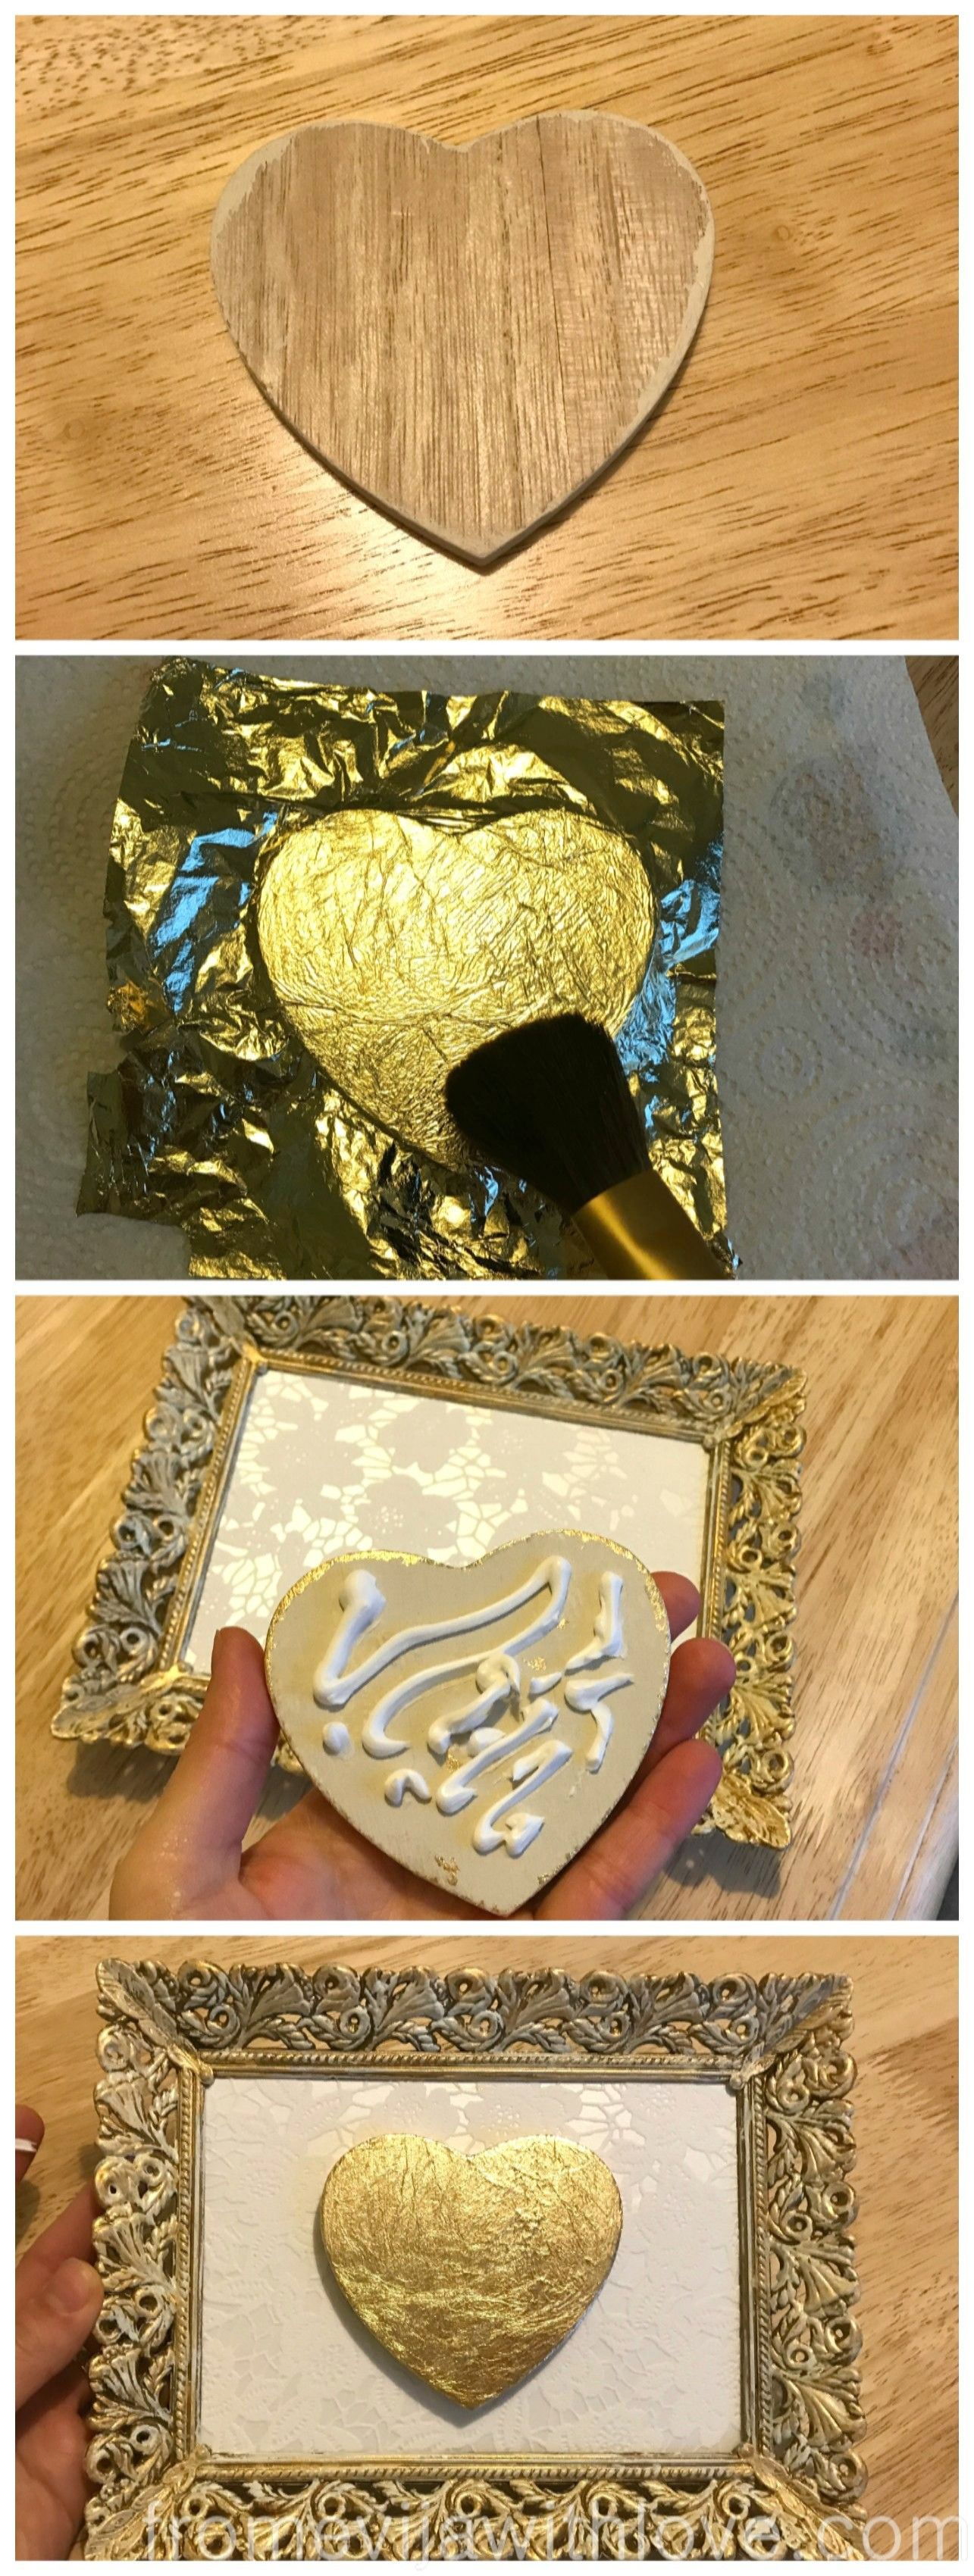 DIY Gold Leaf Heart Frame for My Gallery Wall | Crazy for DIY ...